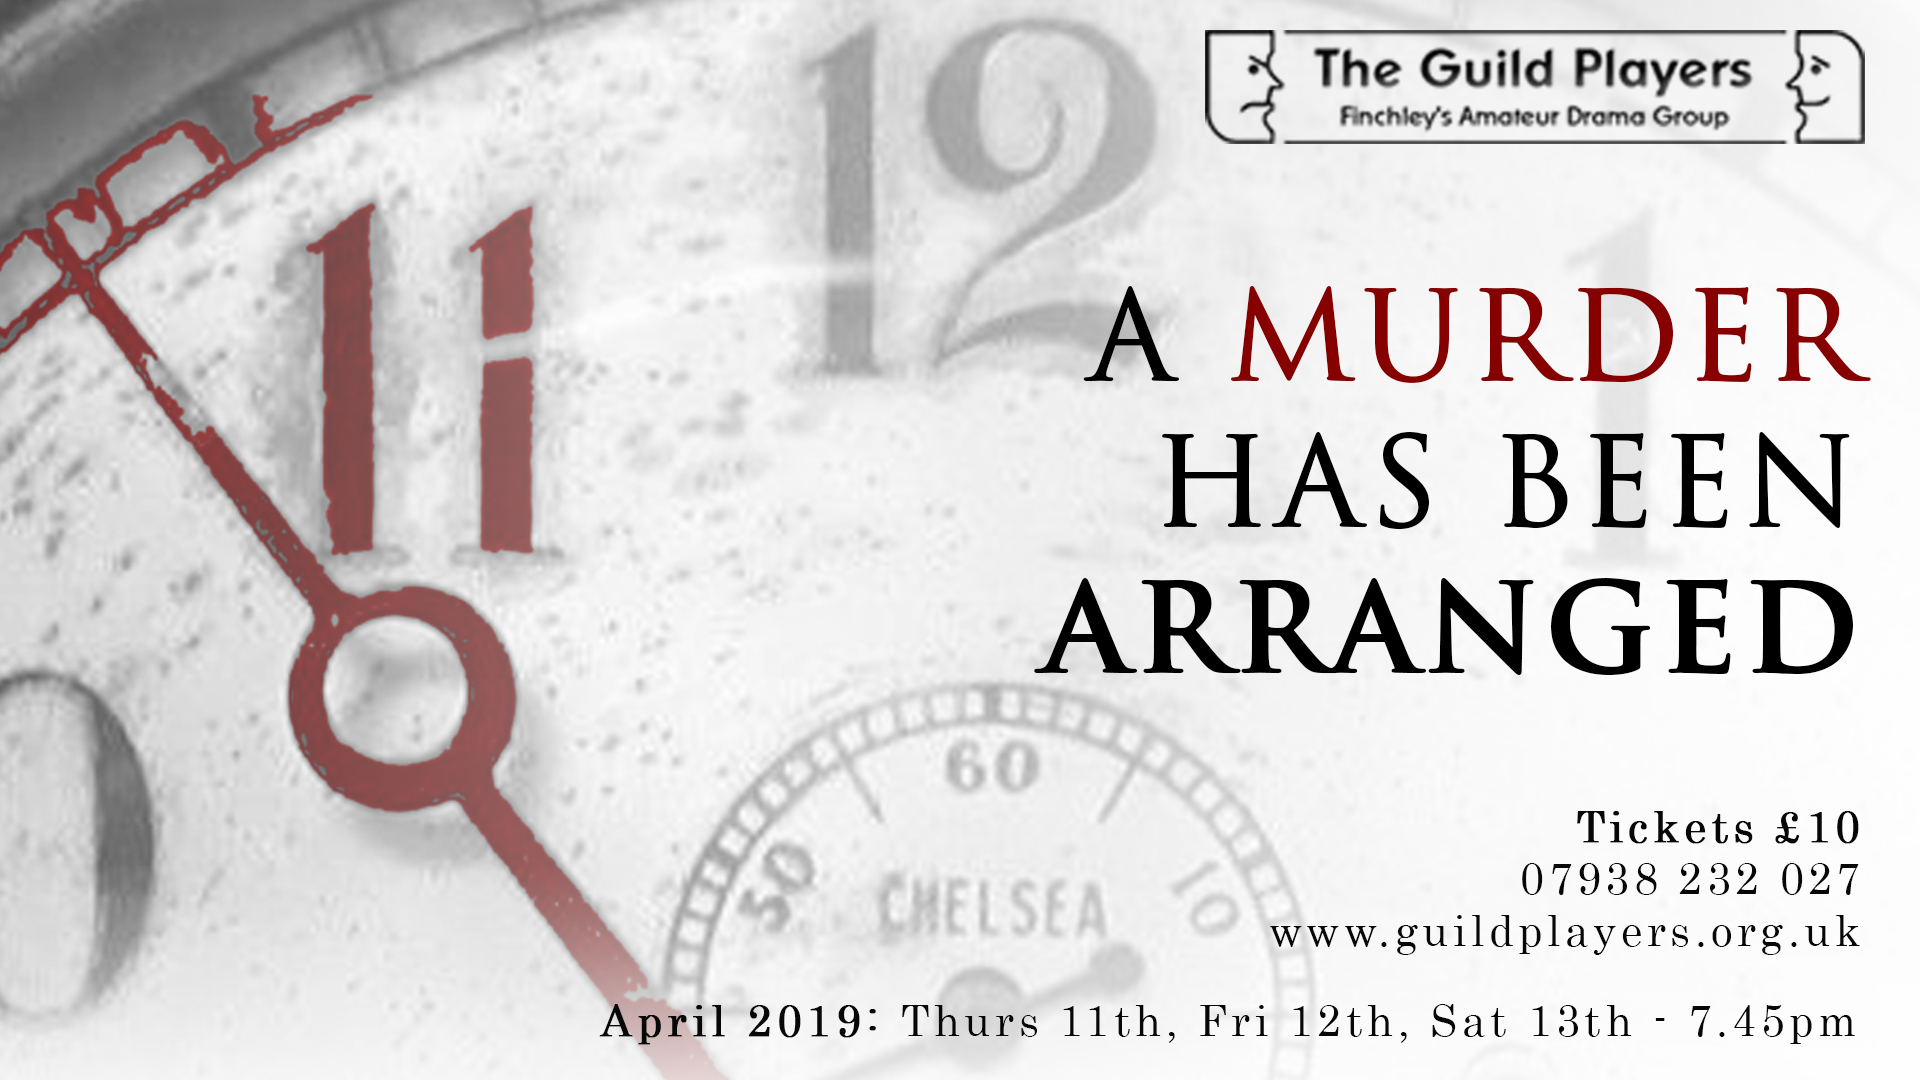 'A Murder Has Been Arranged - a play by Emlyn Williams